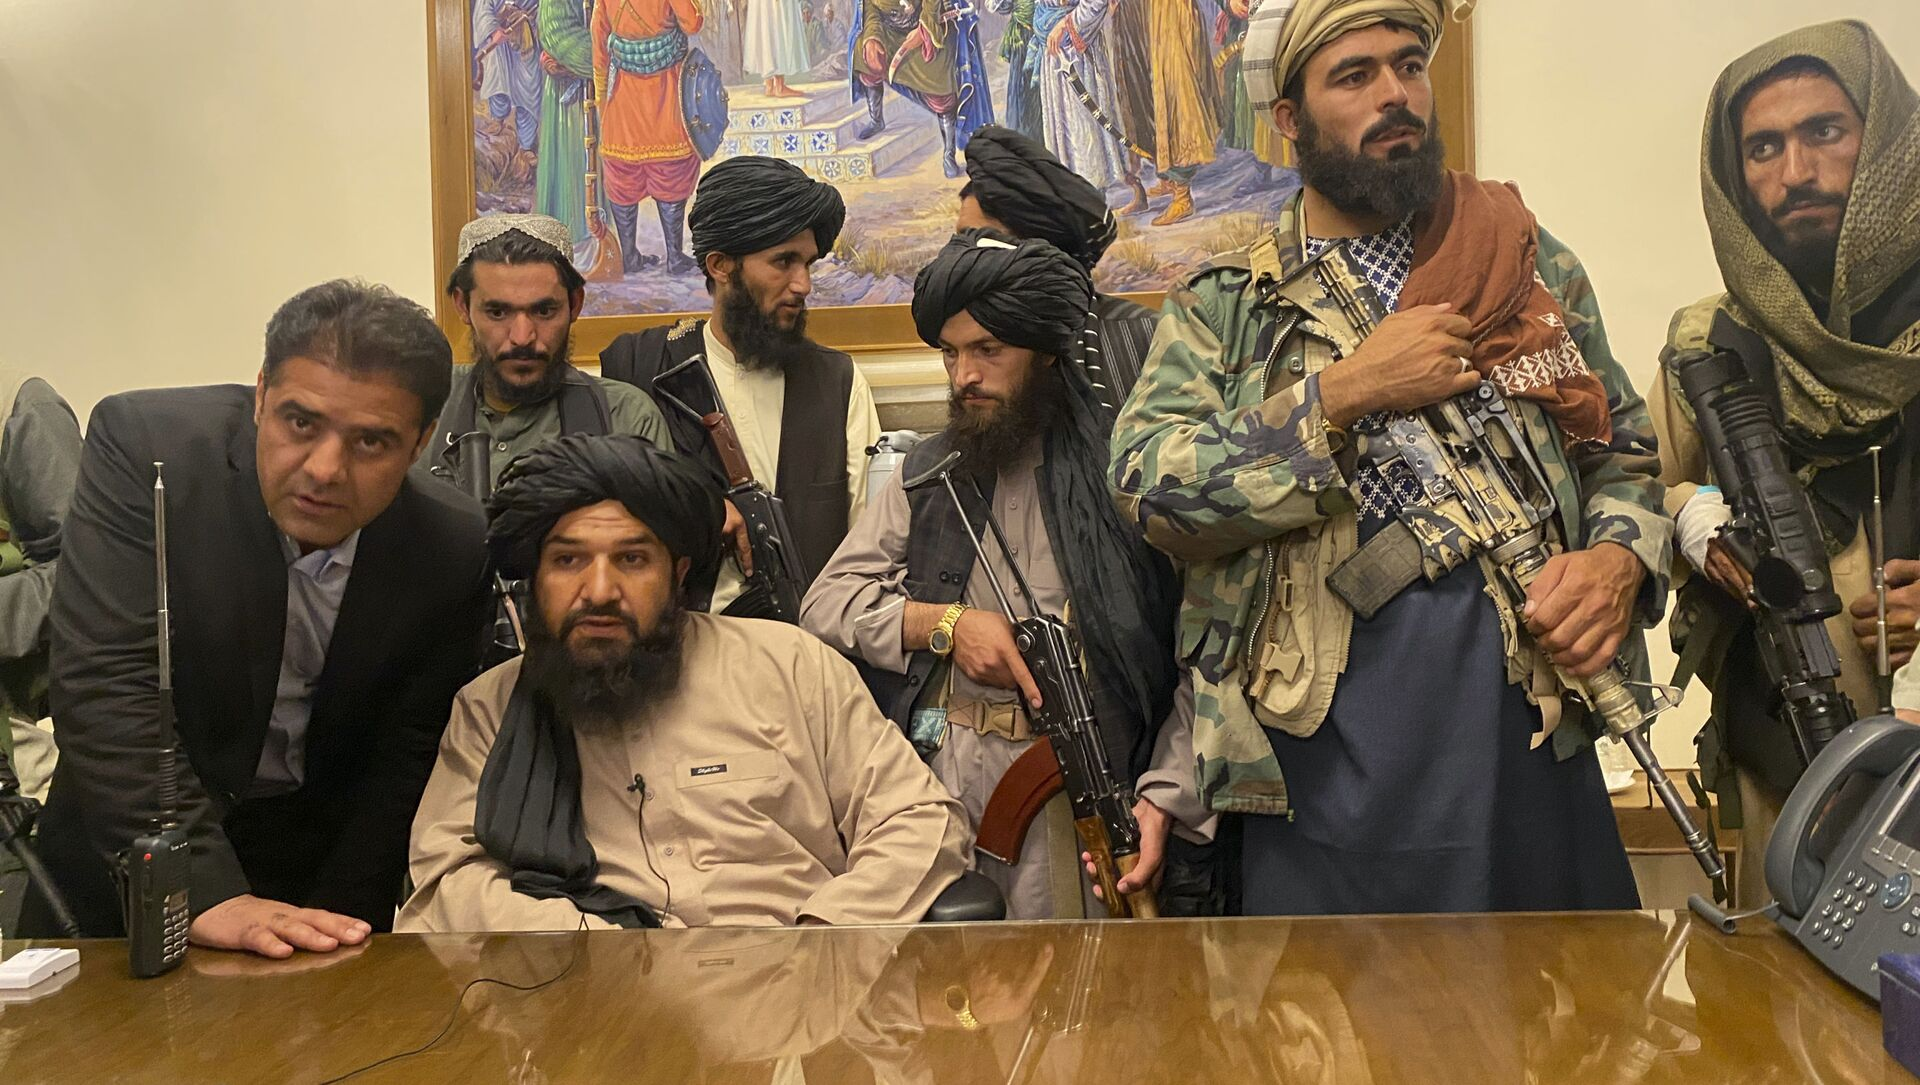 Taliban fighters take control of Afghan presidential palace after the Afghan President Ashraf Ghani fled the country, in Kabul, Afghanistan, Sunday, Aug. 15, 2021. - Sputnik International, 1920, 15.08.2021